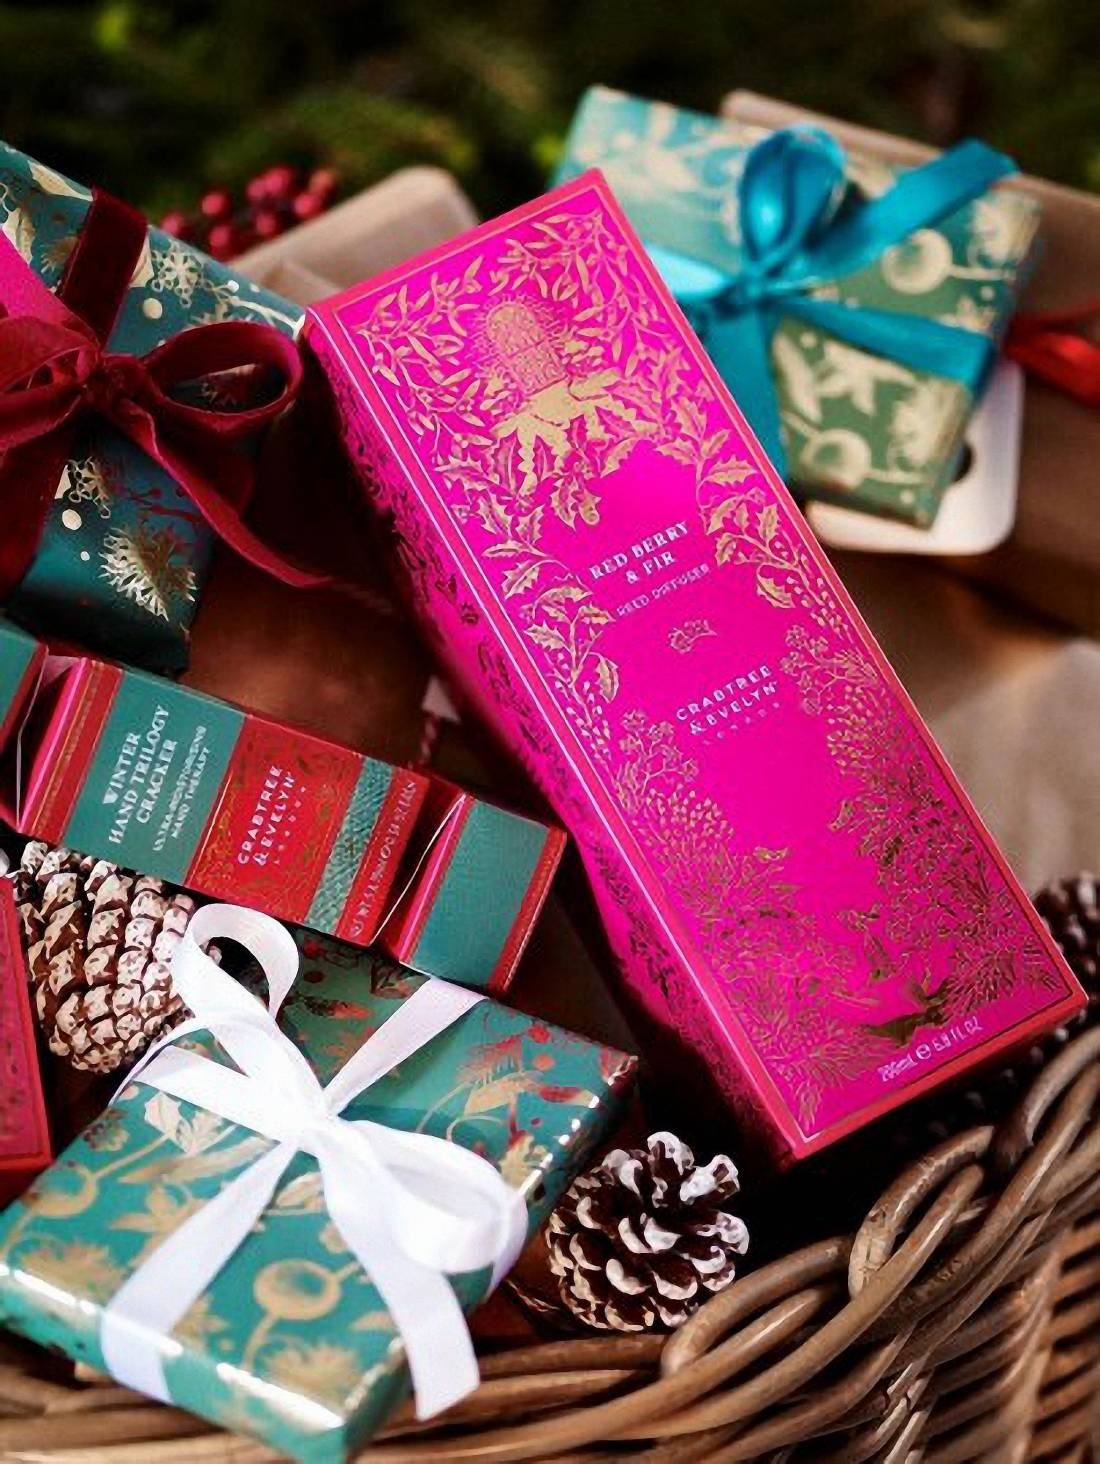 Crabtree & Evelyn Christmas